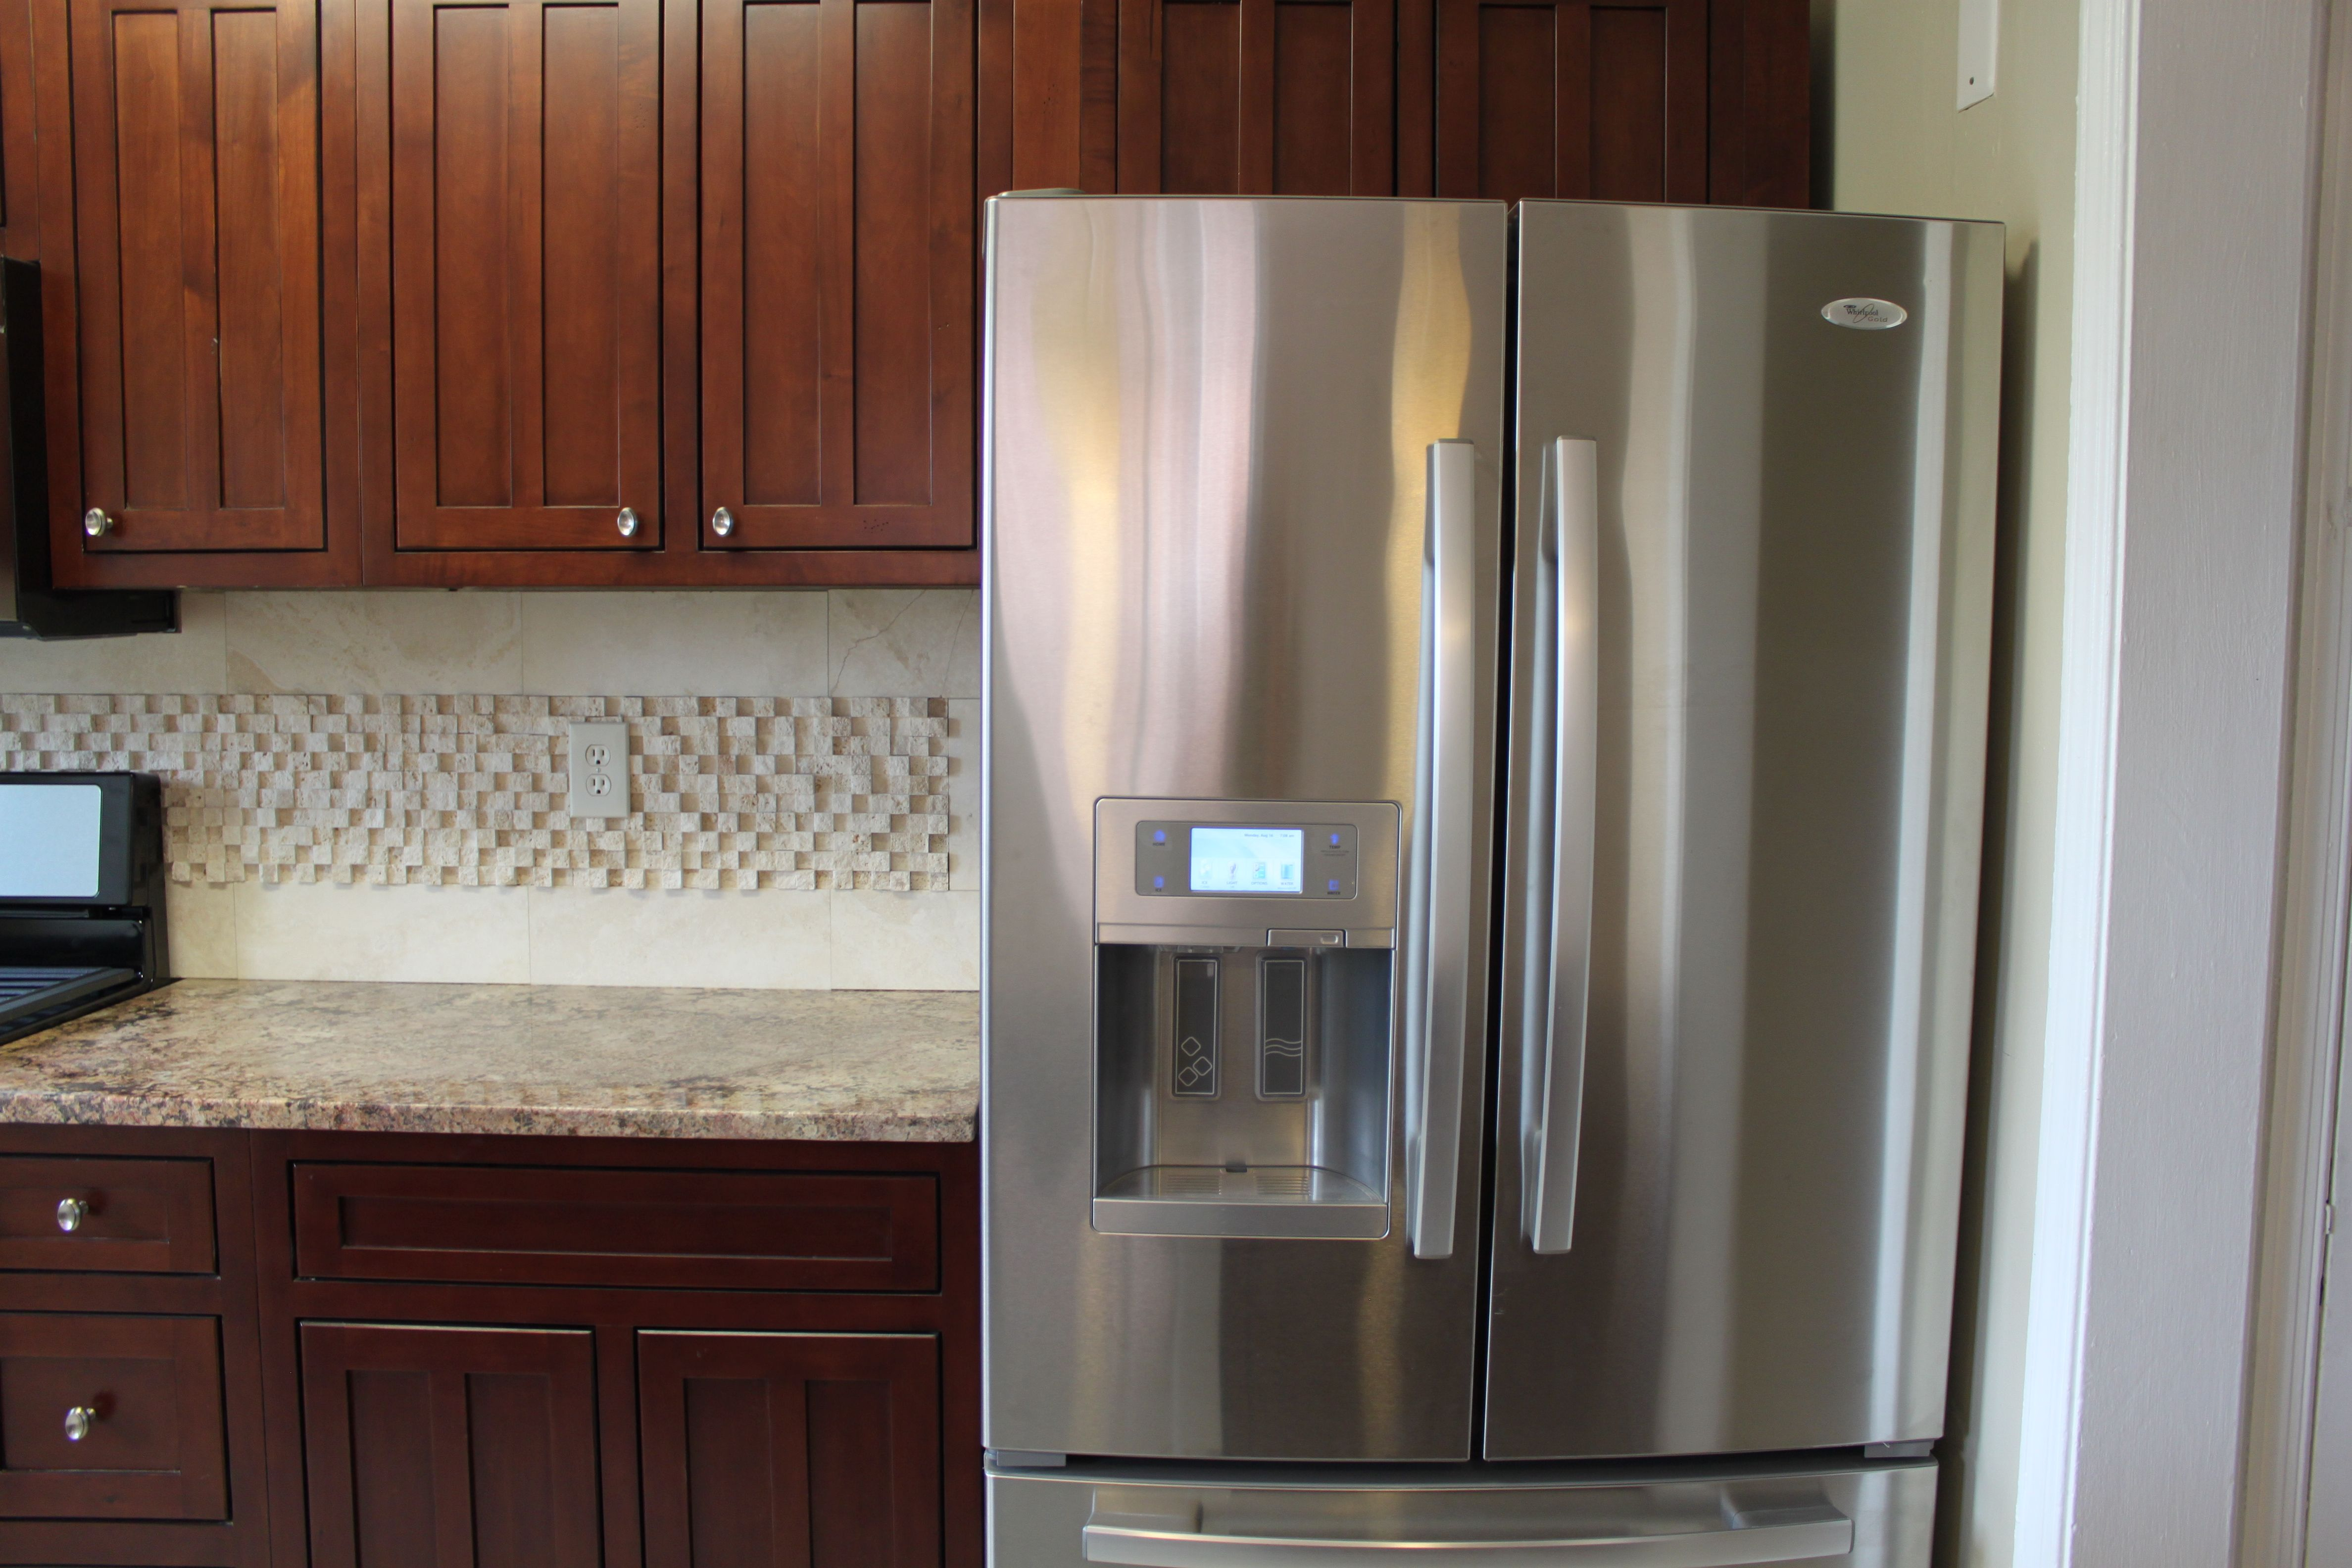 Whirlpool Gold Stainless Steel French Door Refrigerator With Digital